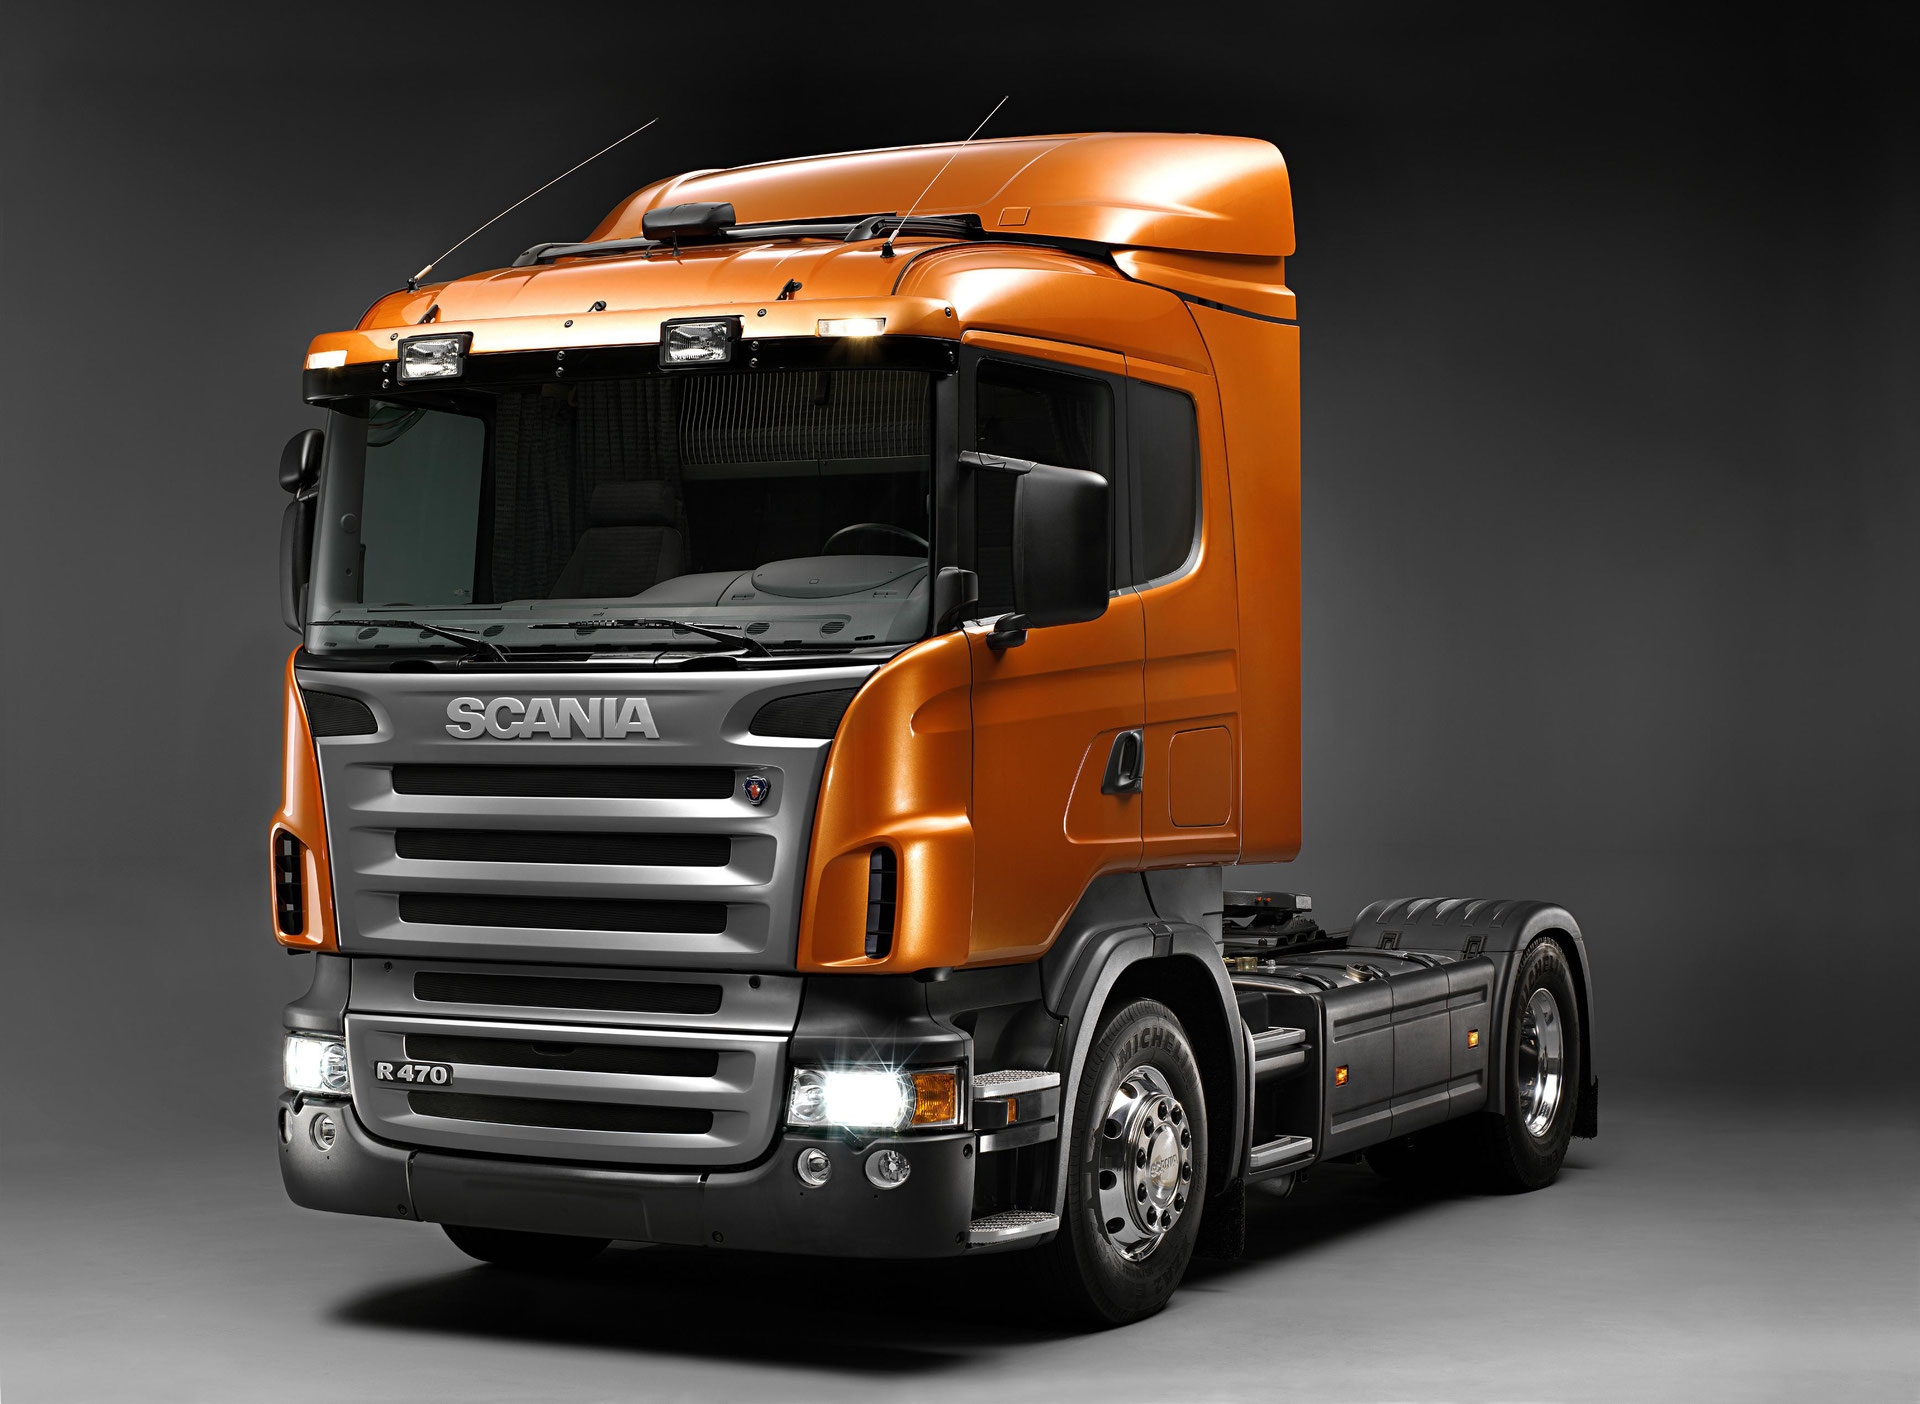 180 Scania Trucks Service Manuals Free Download - Truck ...